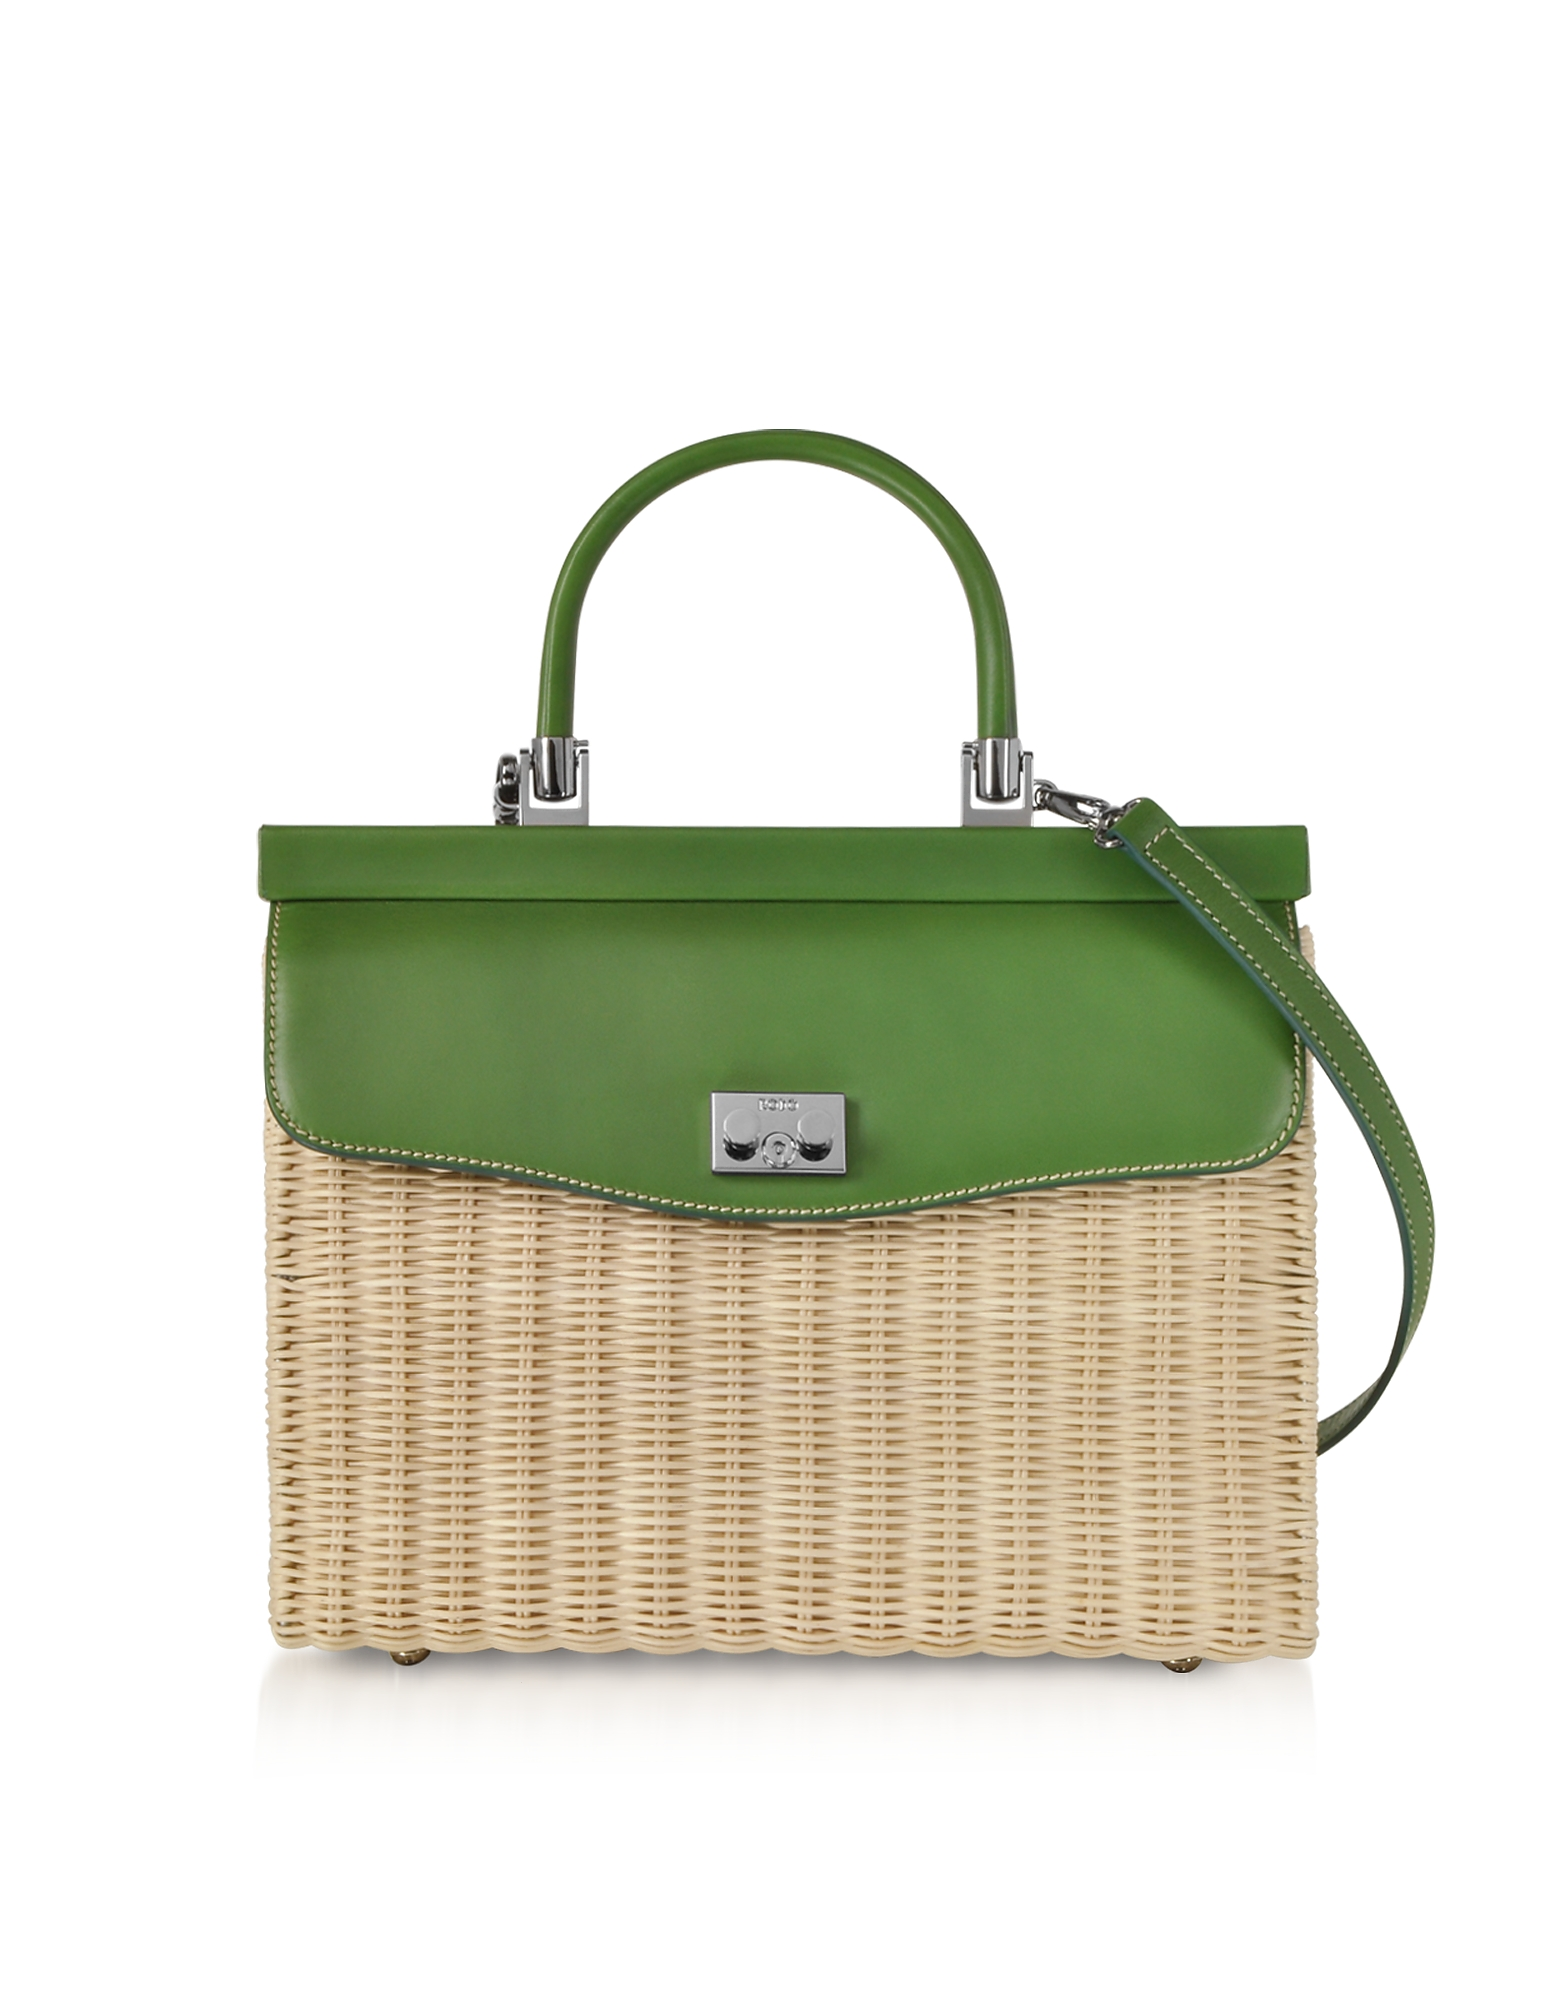 Rodo Handbags, Whitewashed Wicker and Leather Top-Handle Bag